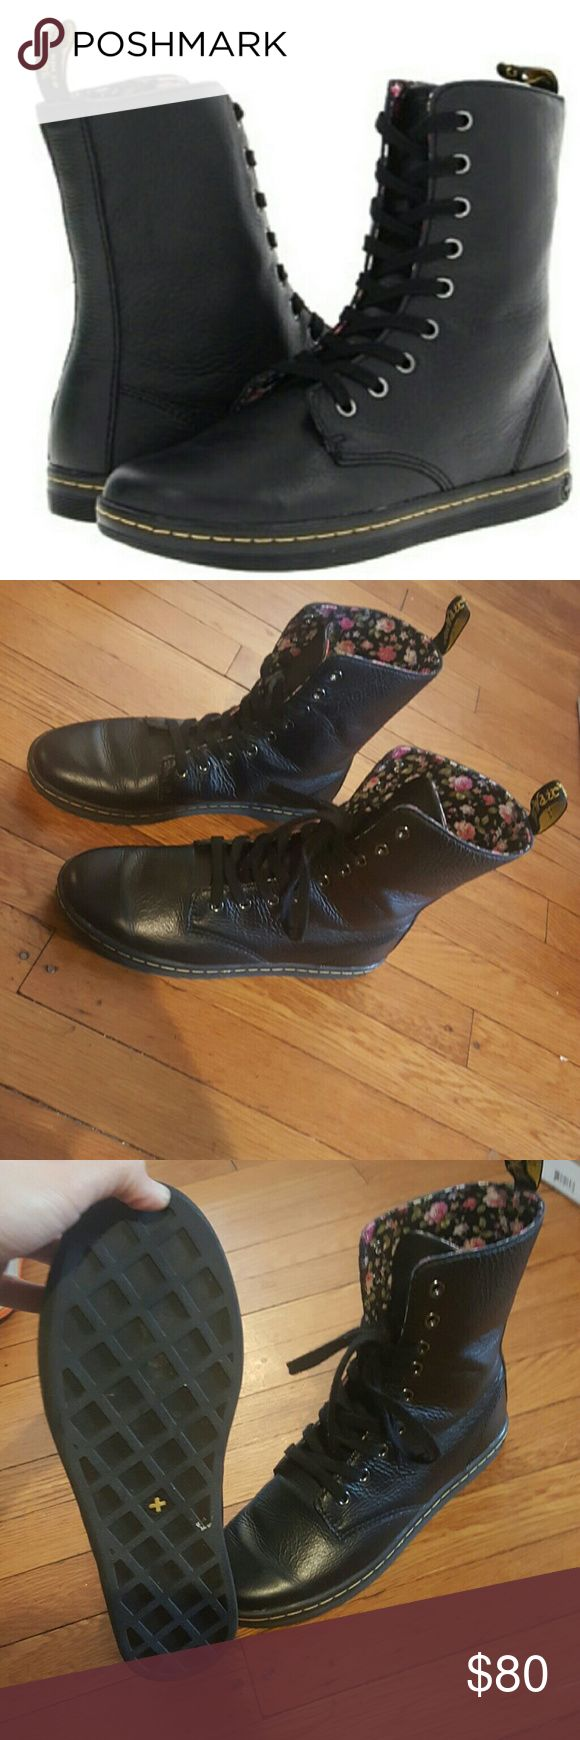 DR.MARTEN DOCS STRATFORD WOMENS 9 DR.MARTEN WOMENS 9 BLACK LEATHER BOOTS COMBAT BOOTS STYLE Only worn a few times Dr. Martens Shoes Combat & Moto Boots